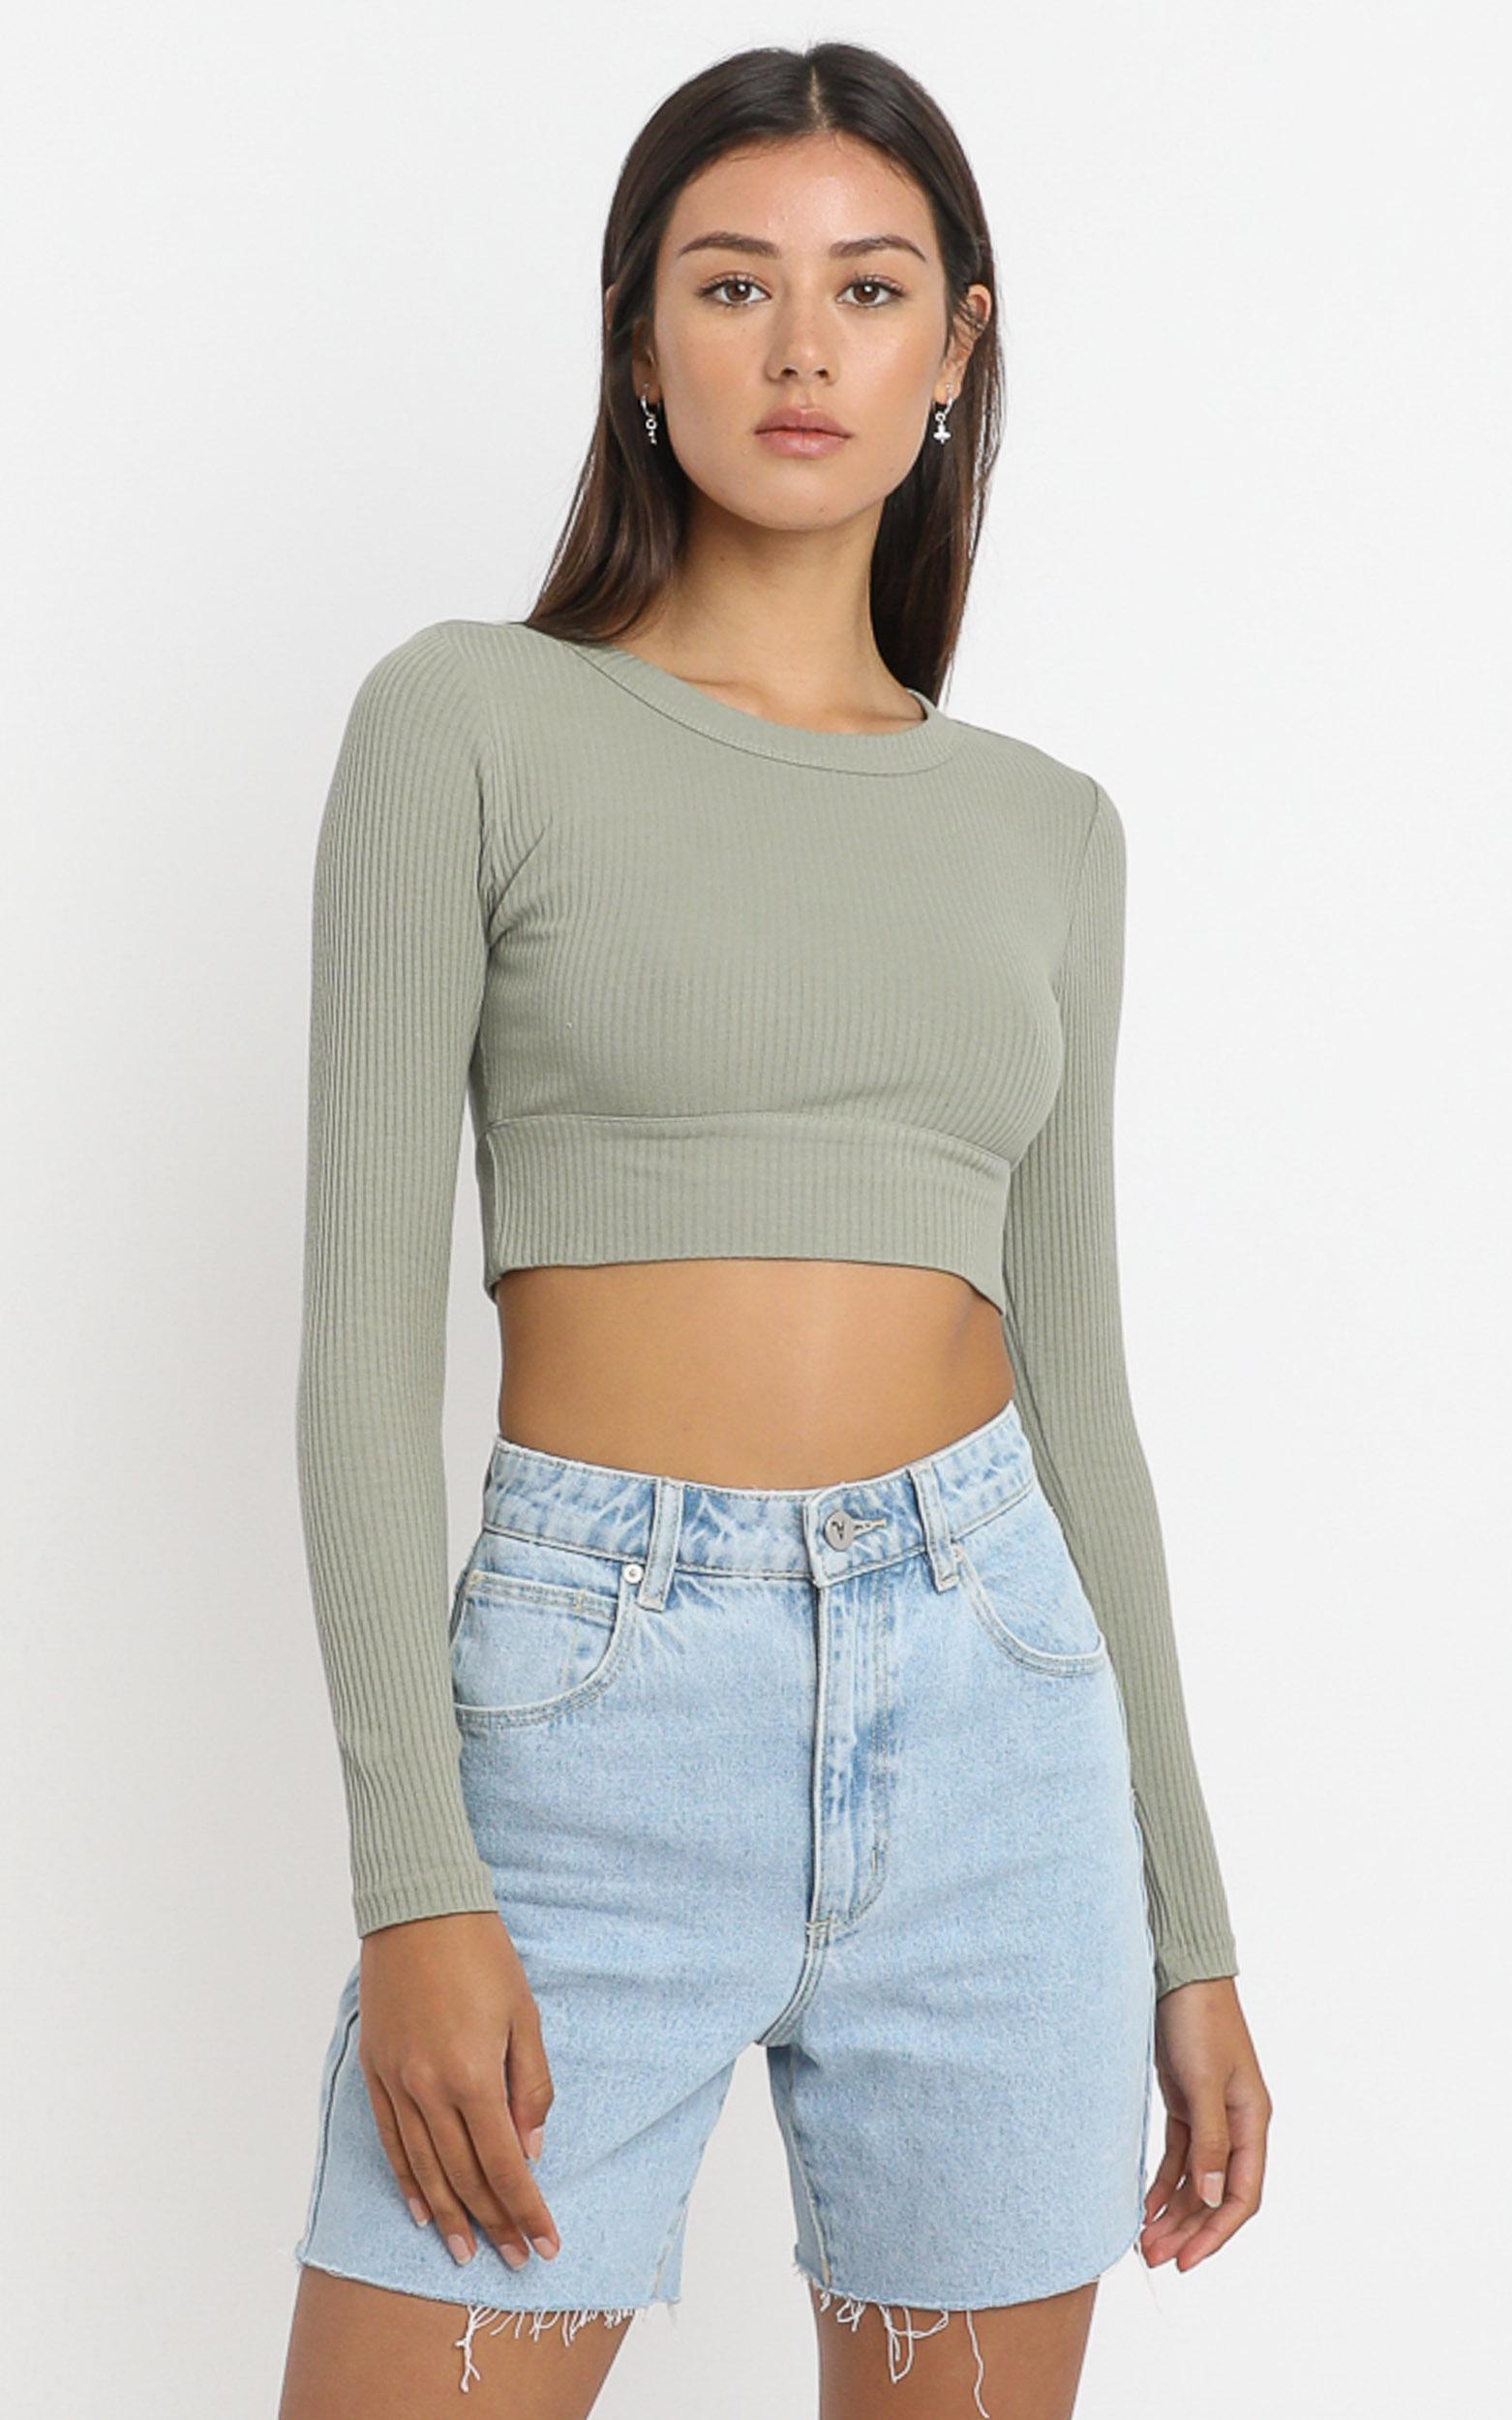 Asher Top in Khaki - 6 (XS), Khaki, hi-res image number null